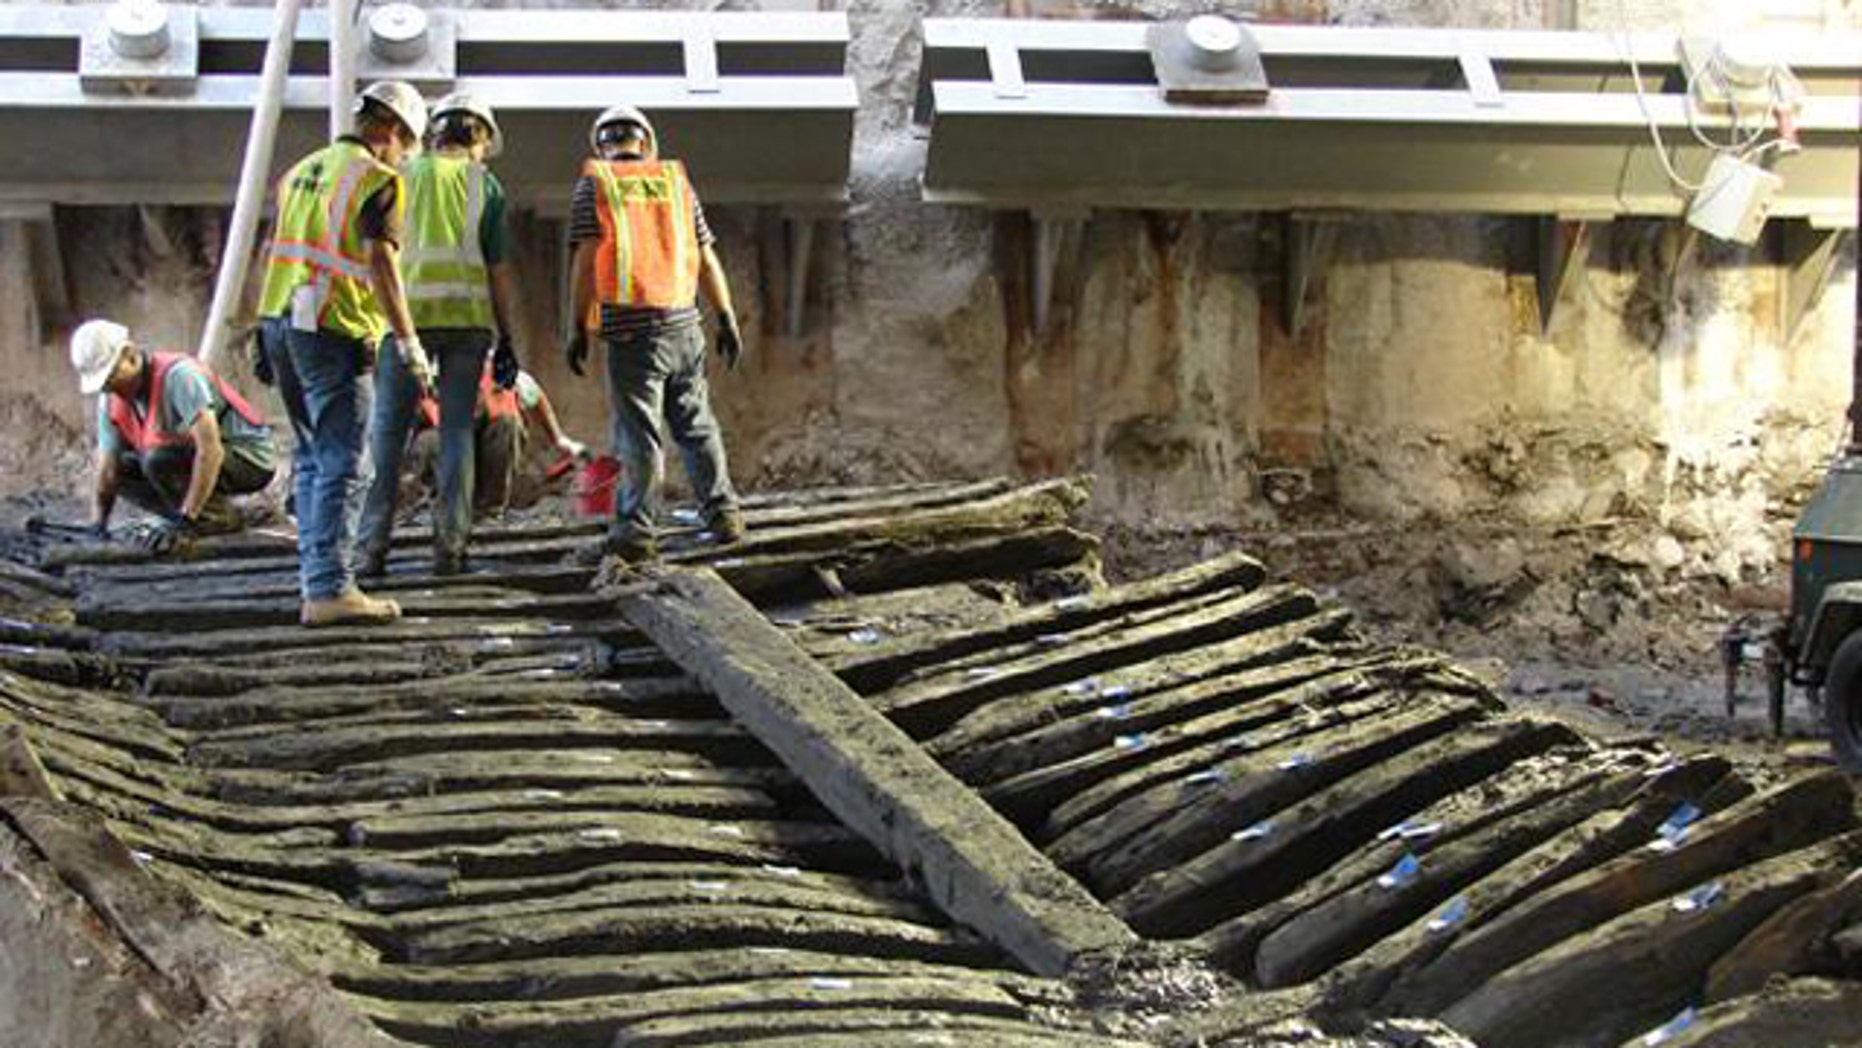 The timbers of the ship uncovered at the World Trade Center site, exposed to the air for possibly the first time in more than 200 years.